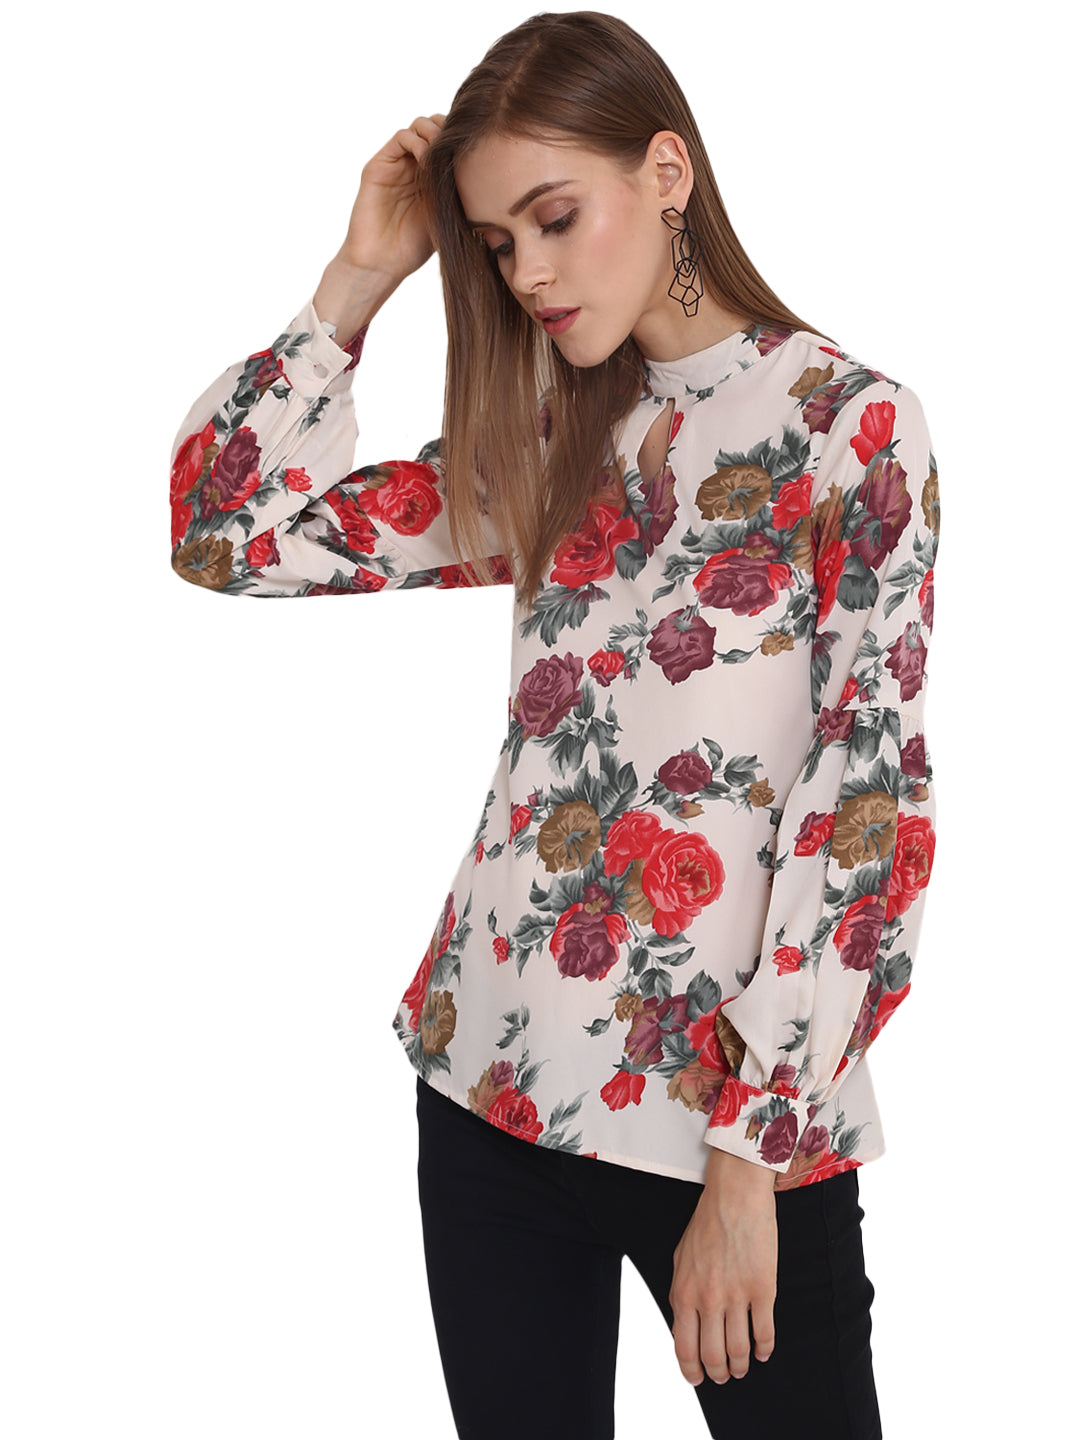 d6988cce5f0 Floral Printed Balloon Sleeves Top - Purys